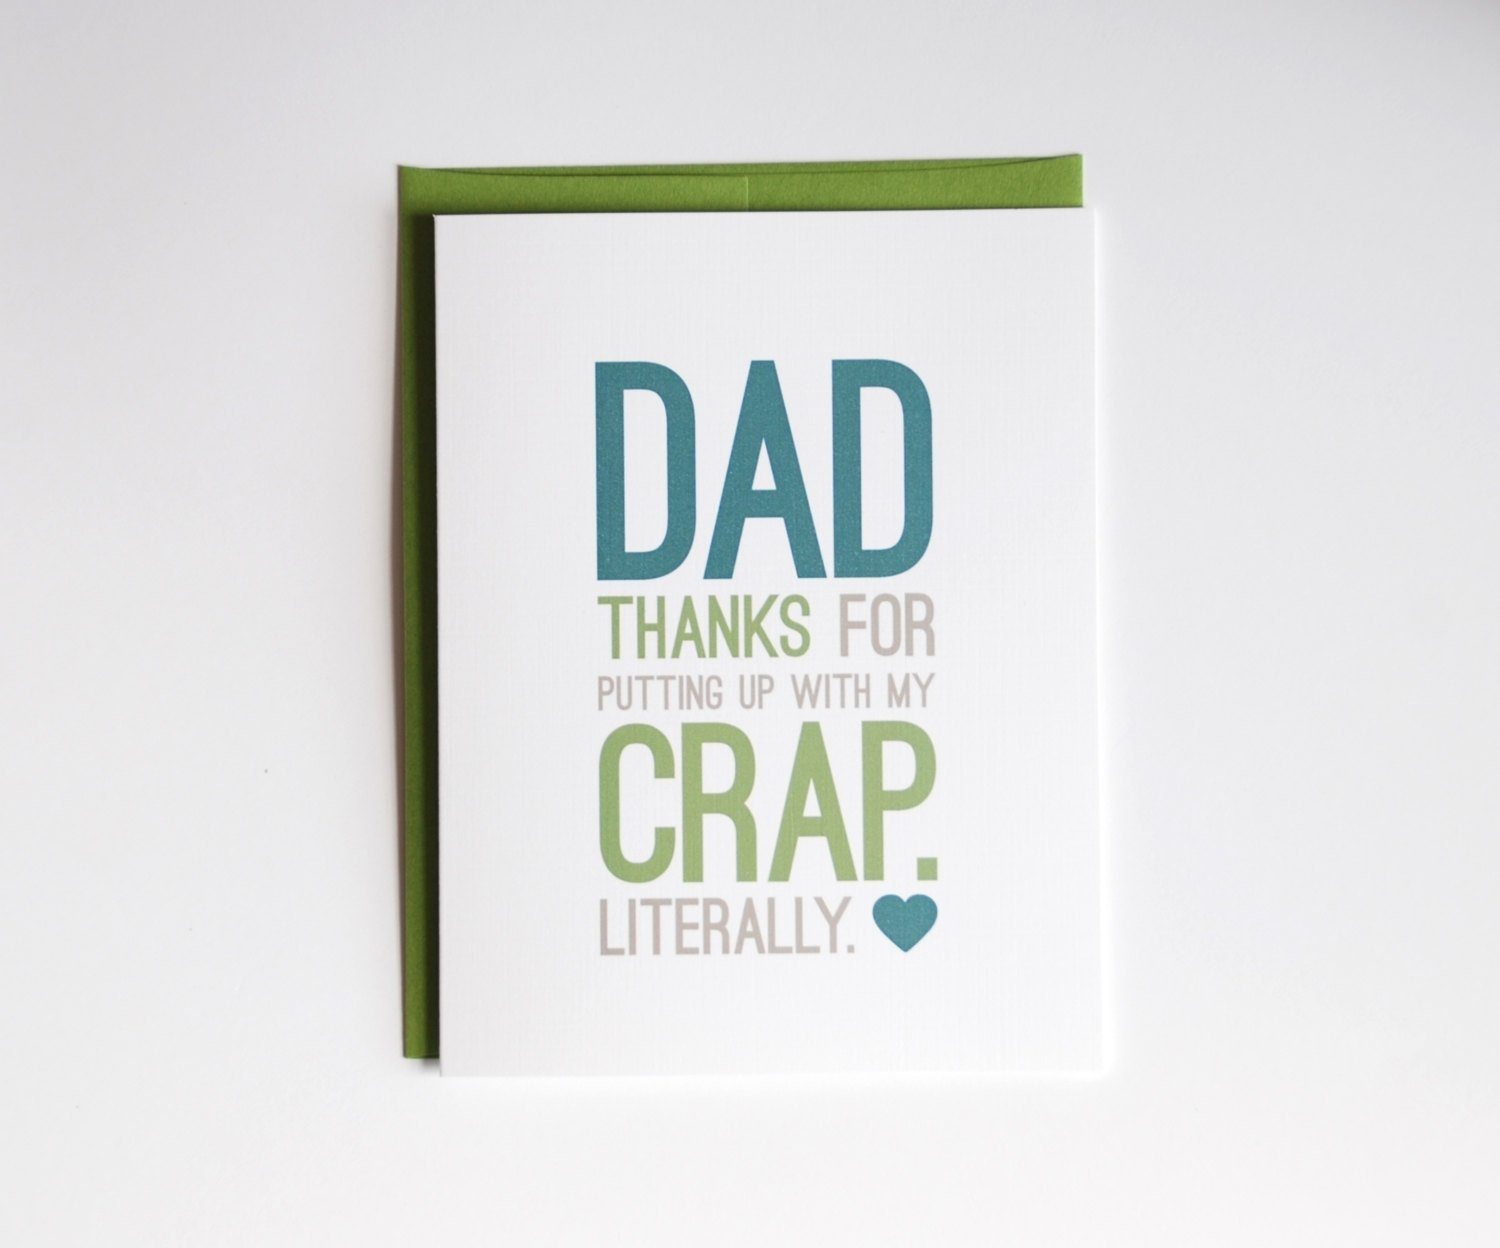 10 Lovable Cute Fathers Day Card Ideas clever fathers day cards google search fathers day pinterest 1 2020